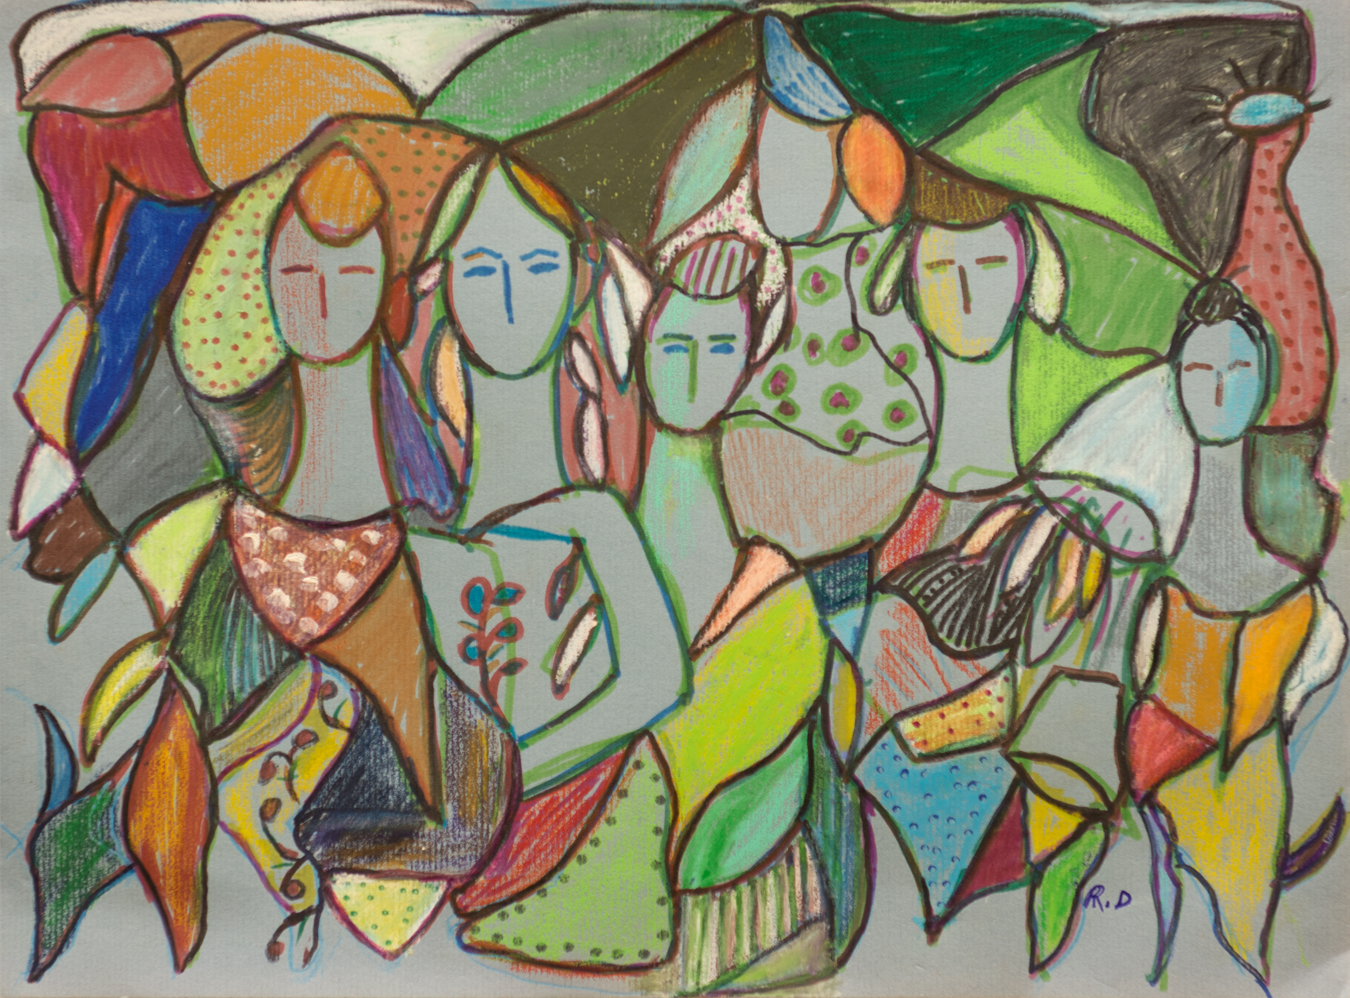 Bosque artwork by Rita David - art listed for sale on Artplode